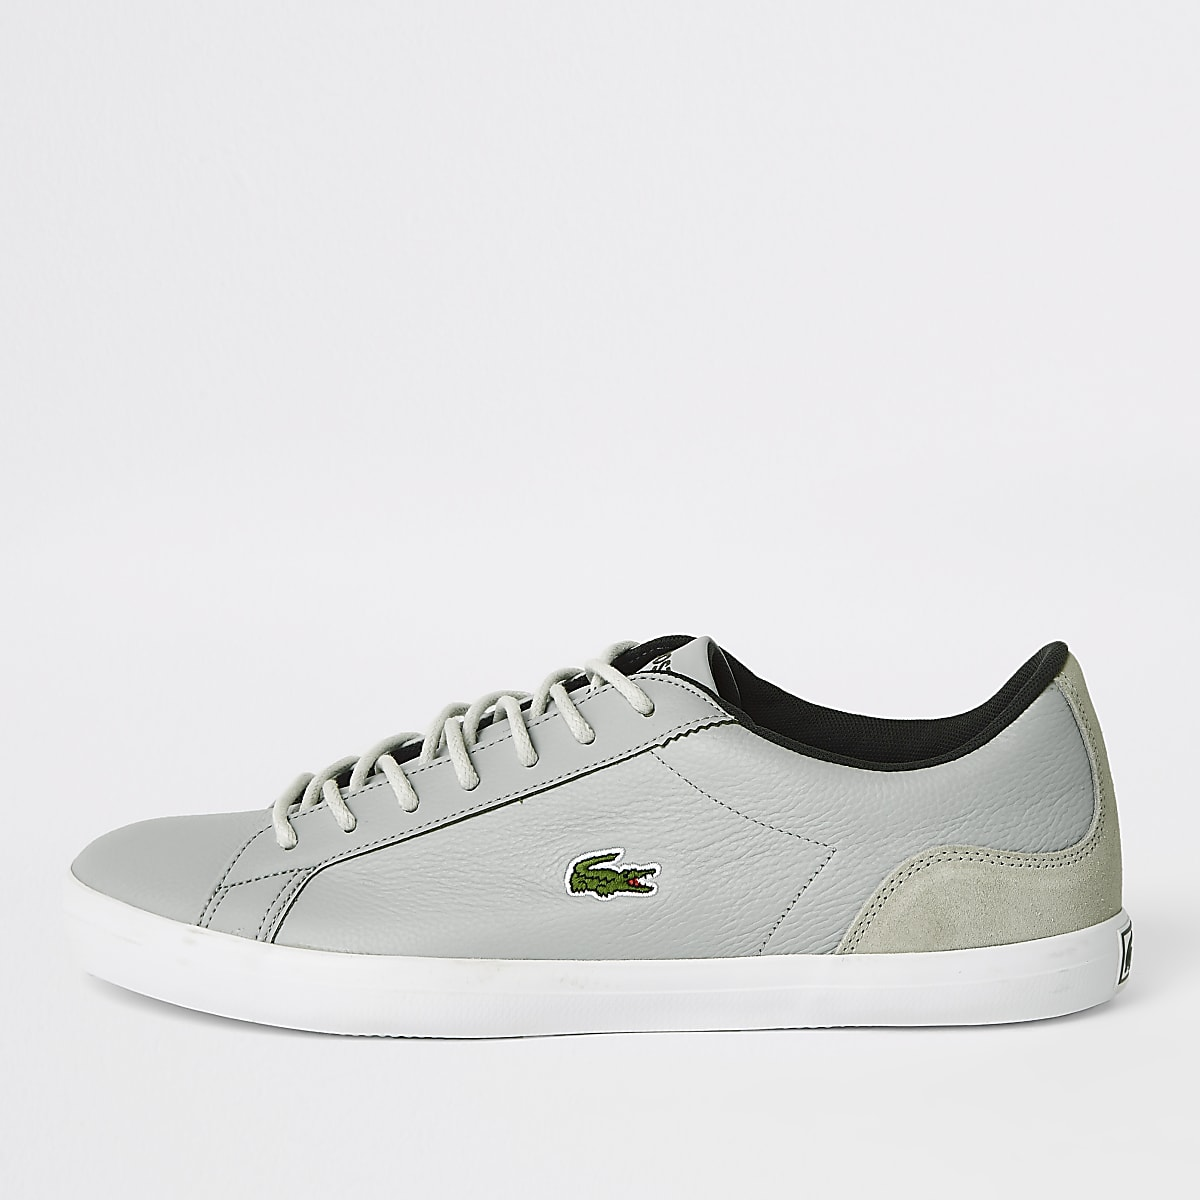 85df70c96 Lacoste grey leather lace-up trainers - Trainers - Shoes   Boots - men